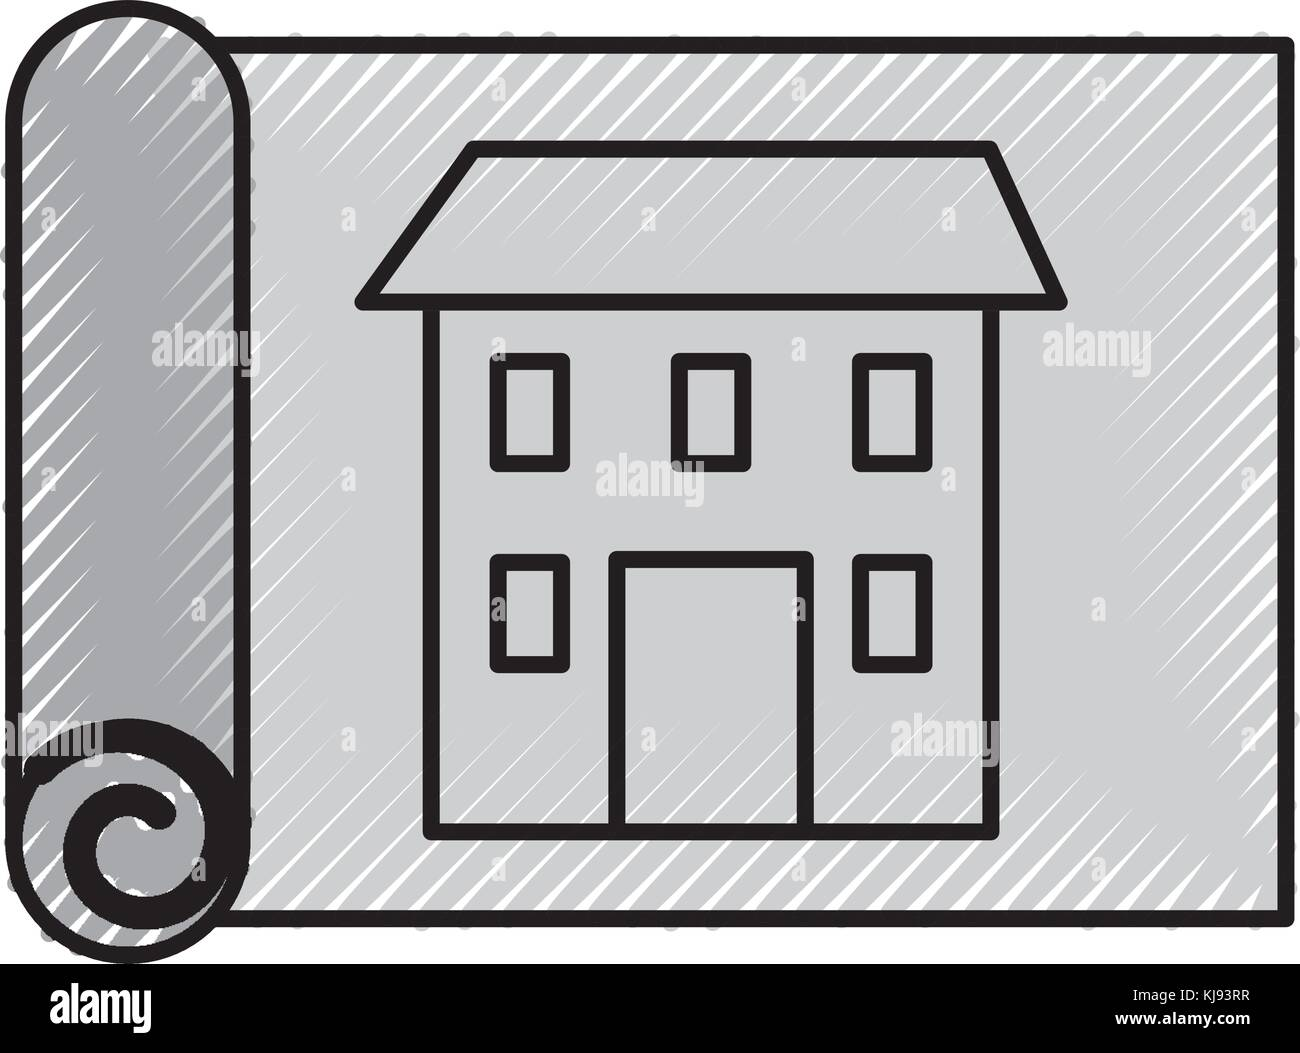 Construction architecture blueprint house paper stock vector art construction architecture blueprint house paper malvernweather Image collections